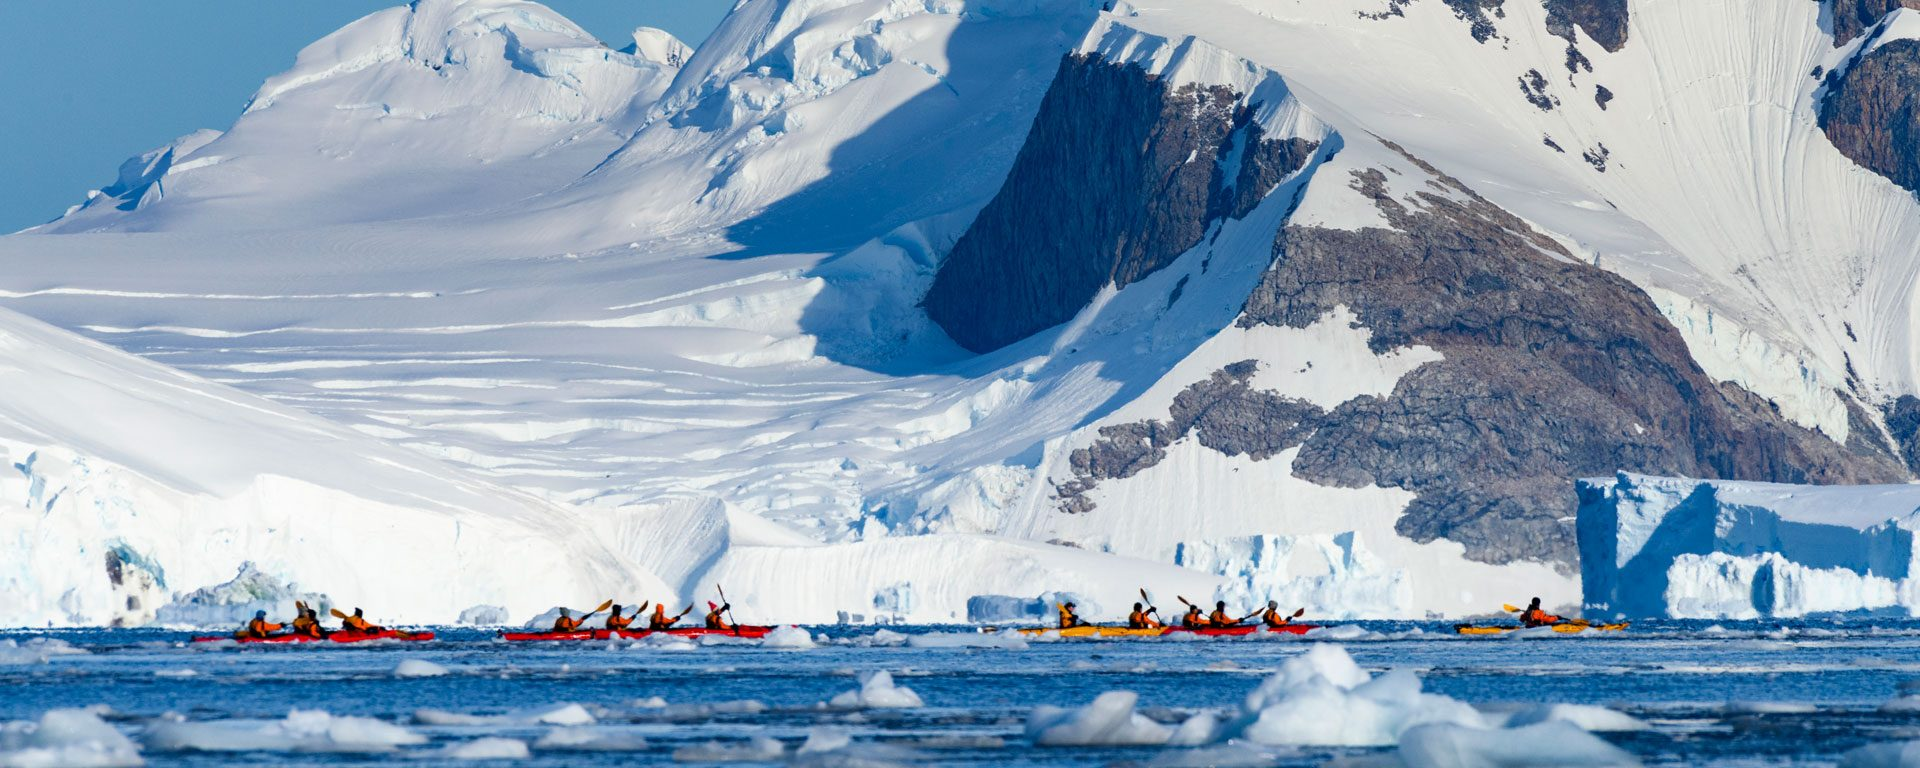 A group of kayakers in Adie Cove, Antarctica